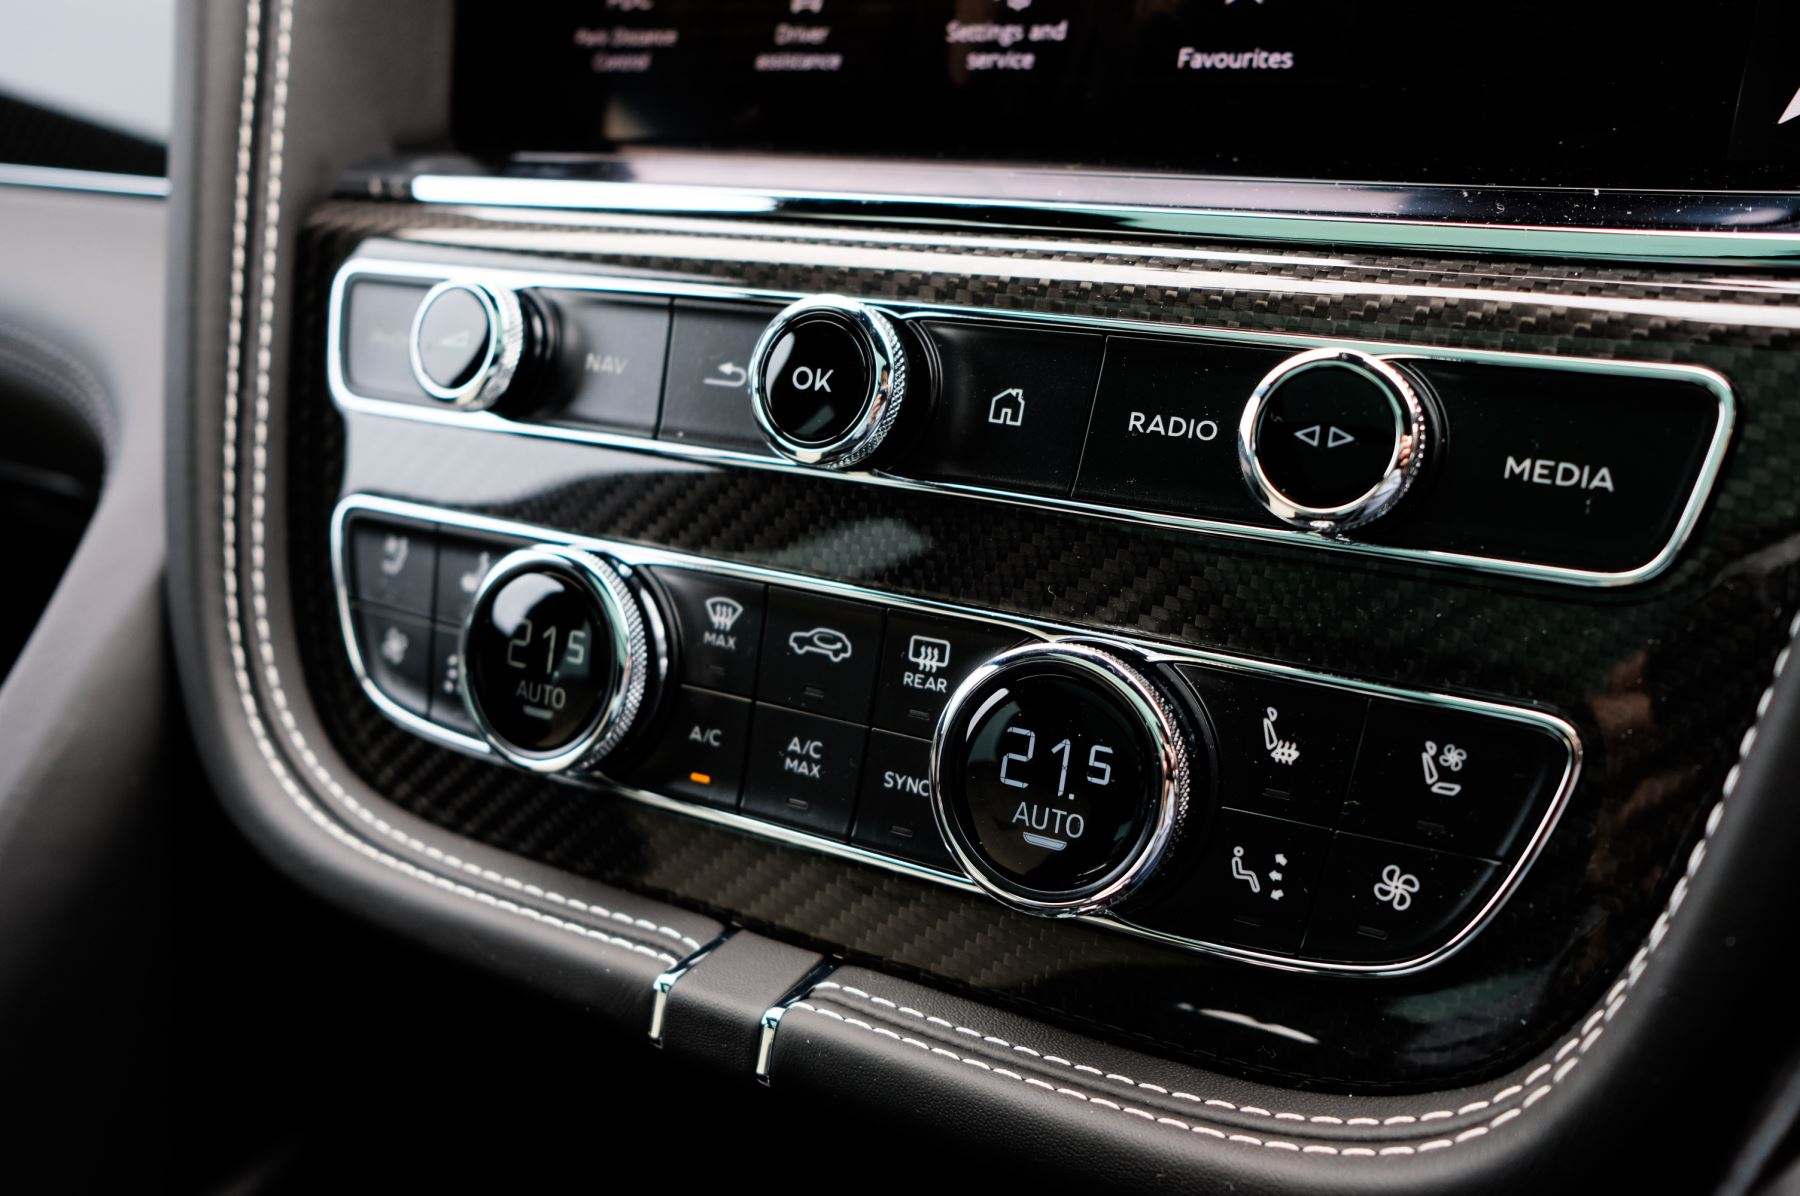 Bentley Bentayga 4.0 V8 5dr [4 Seat] - First Edition - All Terrain Specification image 27